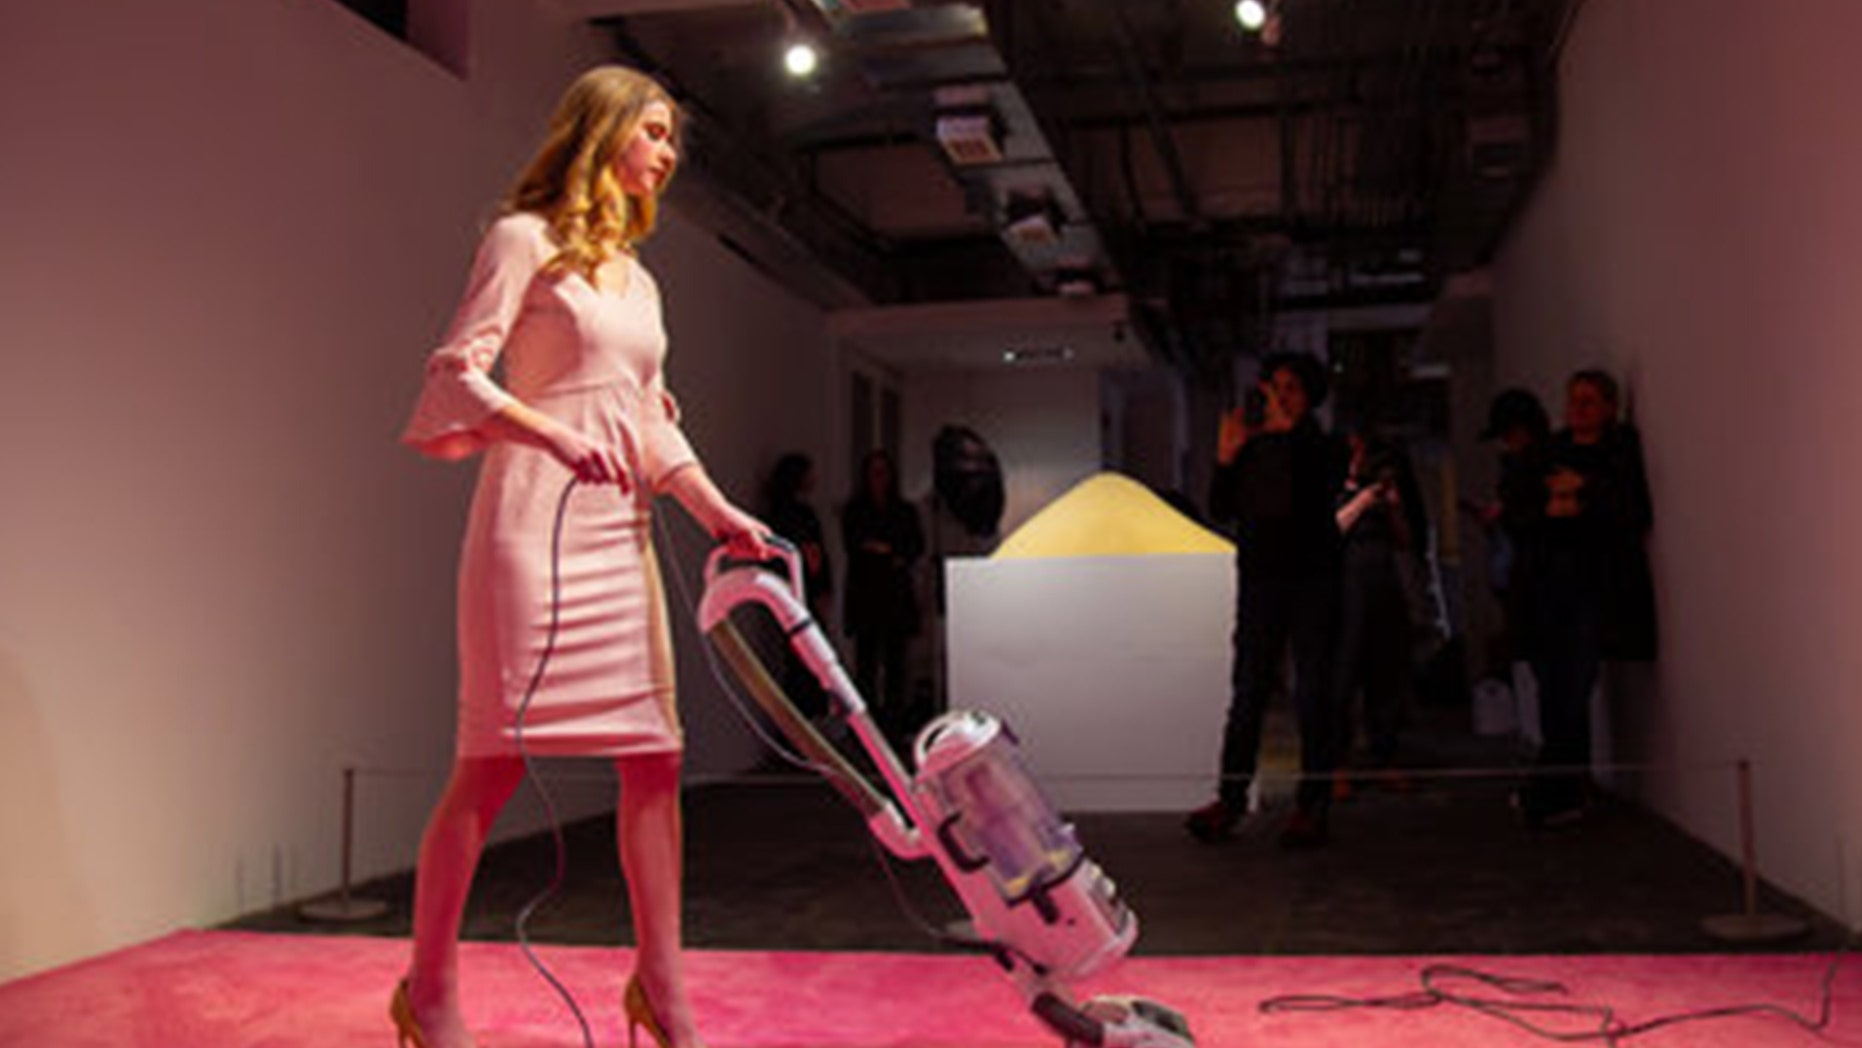 An Ivanka Trump look-alike vacuums at a recently launched art exhibit in Washington, D.C.